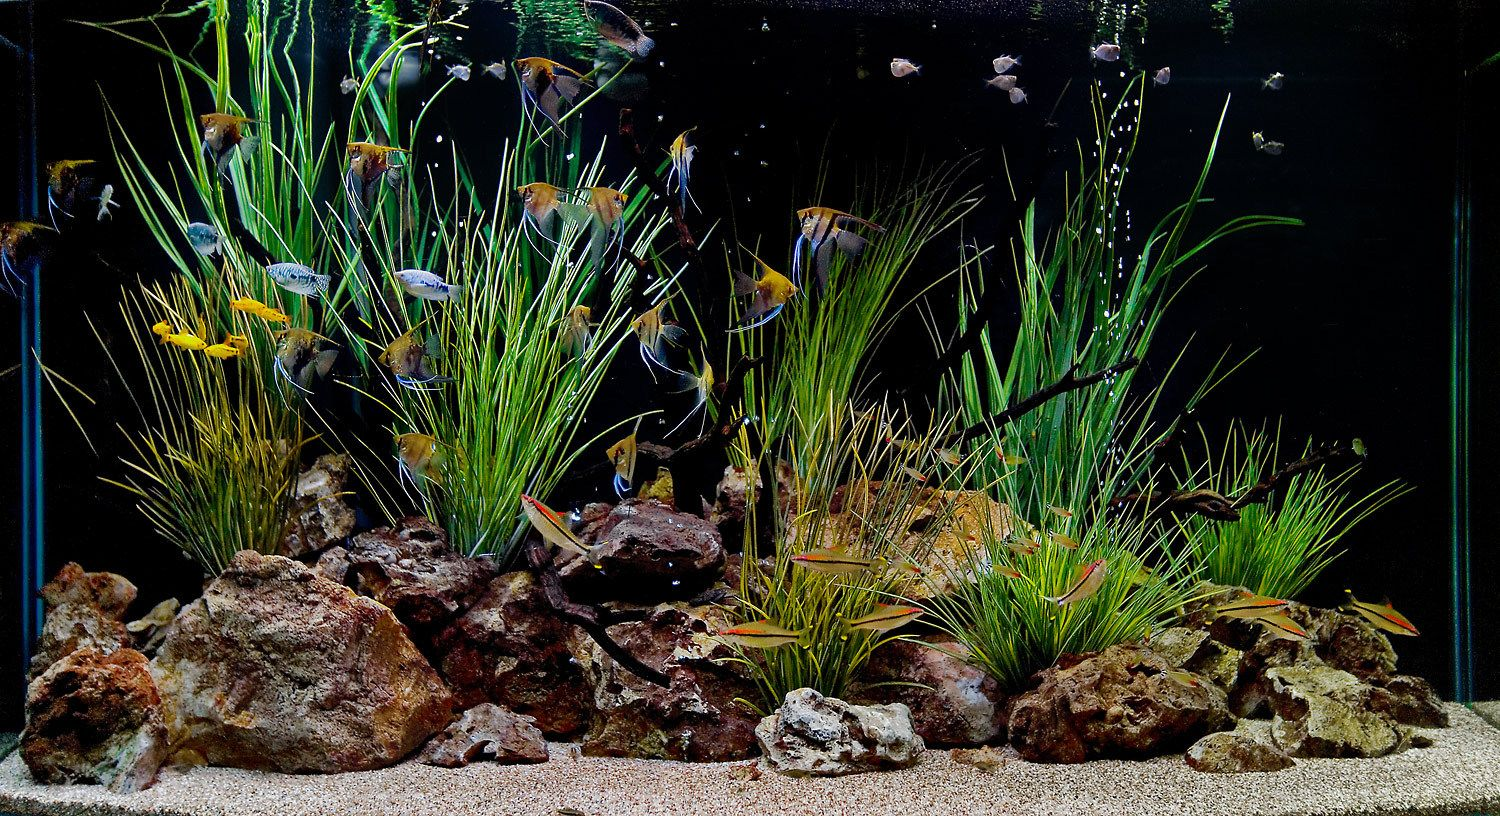 Freshwater Aquarium Design Ideas it will be always freshwater more nature aquariumplanted aquariumaquarium designaquarium ideasaquarium Freshwater Aquarium Design Ideas Aquarium Design Group Custom Aquarium Design Installation And Service